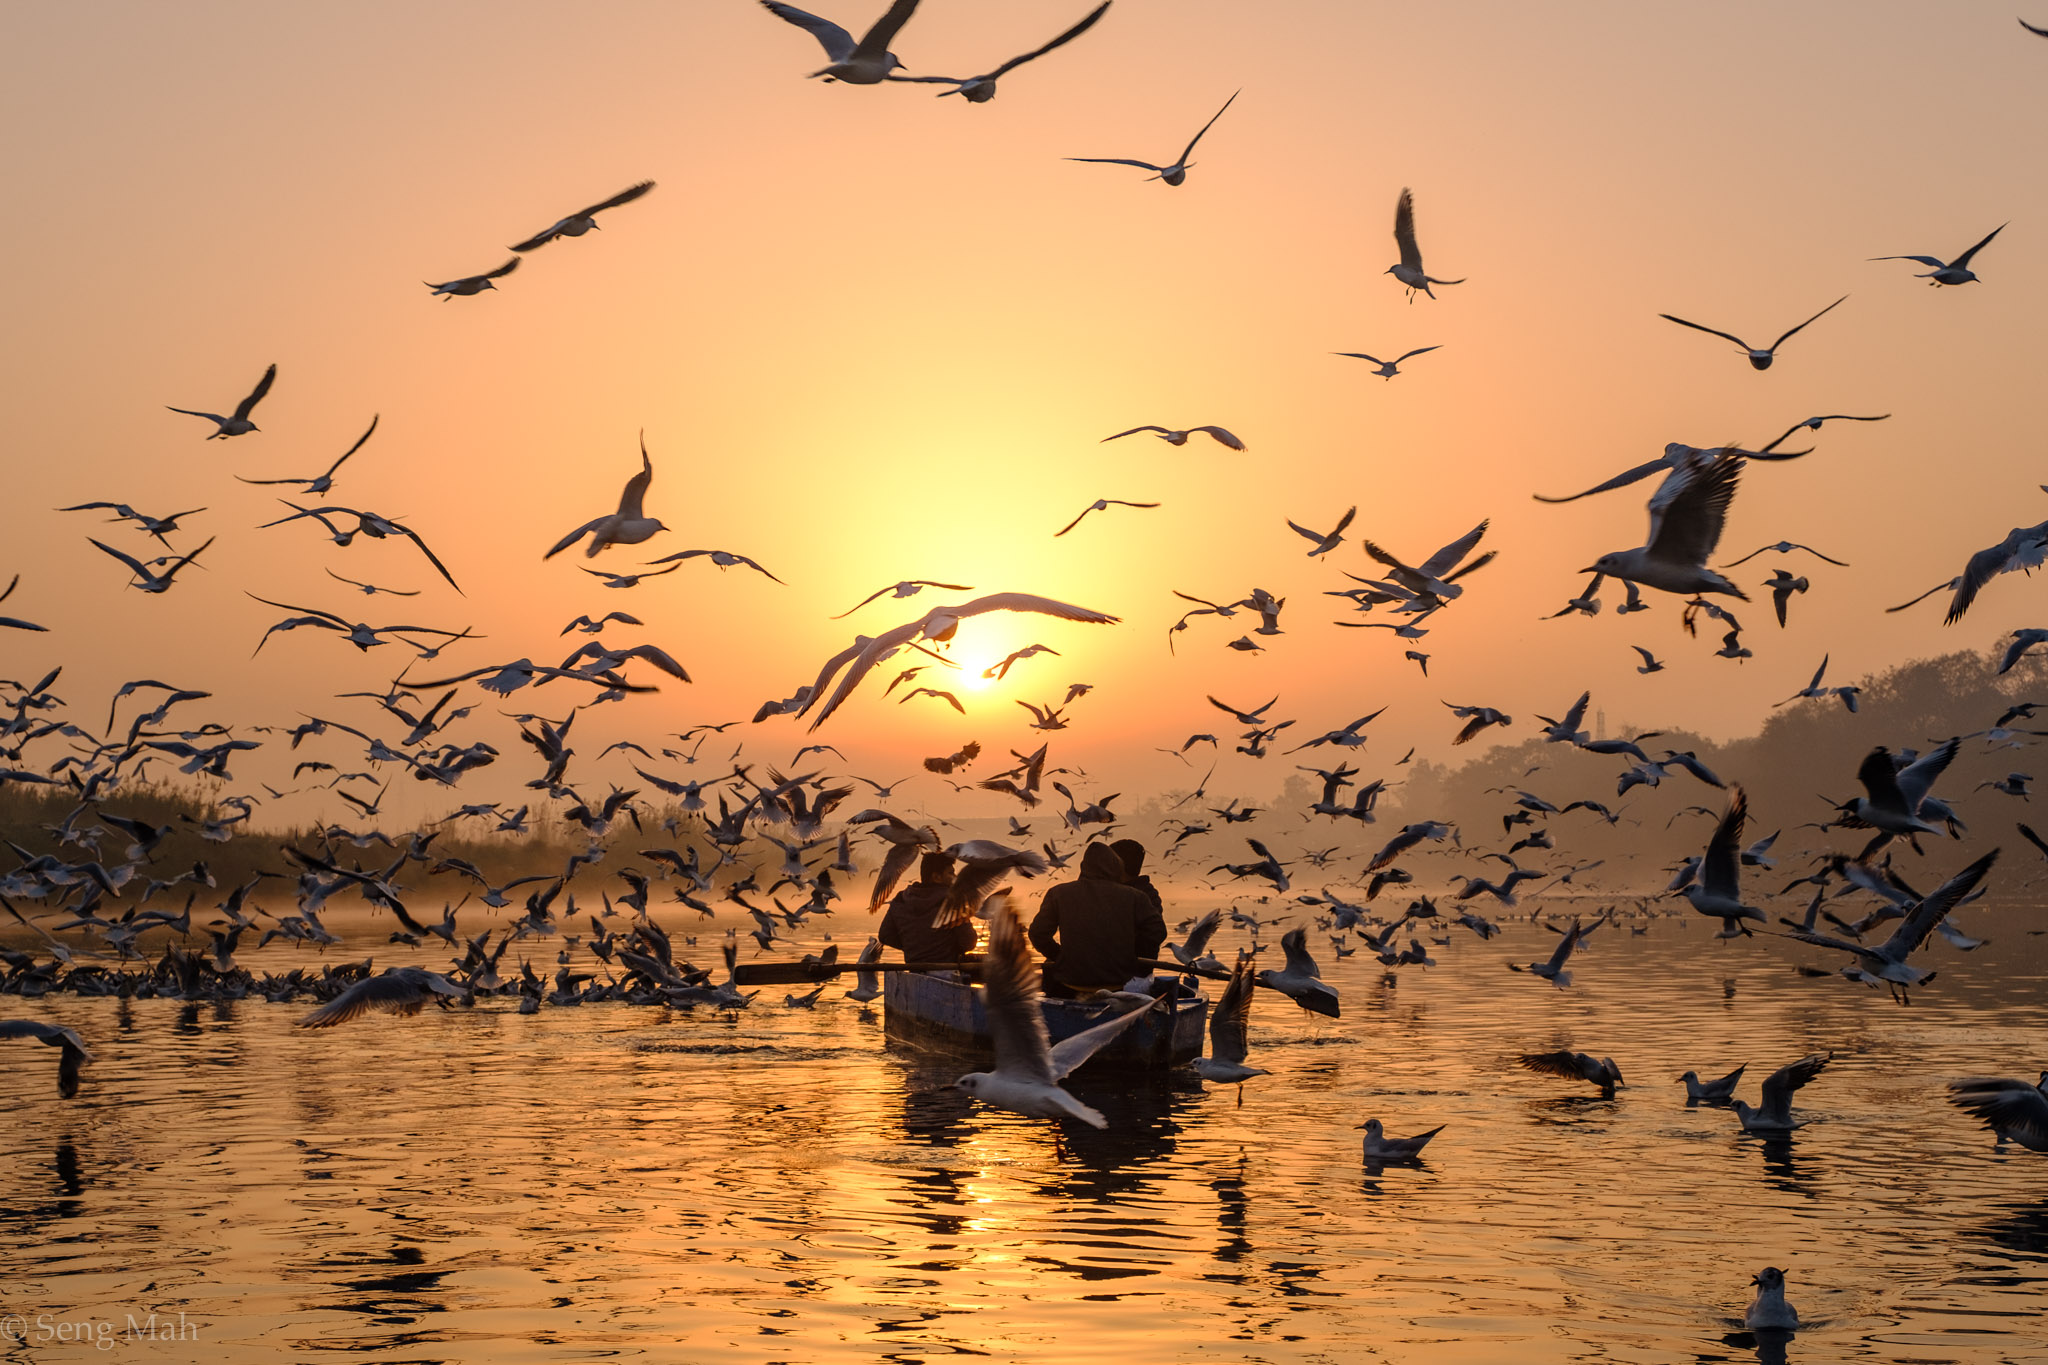 Sunrise, Yamuna River